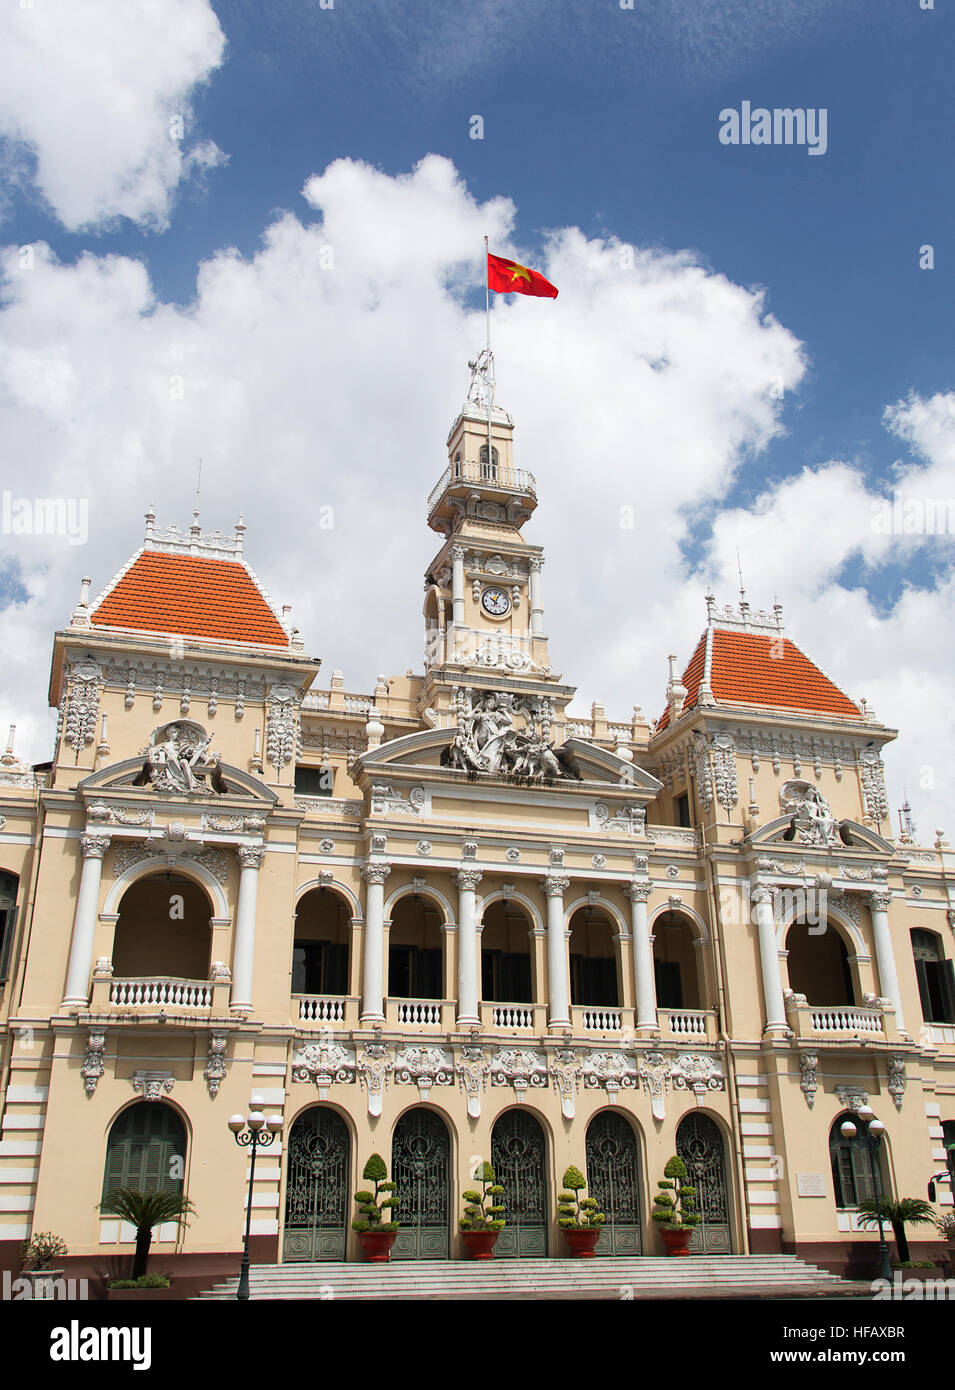 The Peoples' Committee Building Ho Chi MInh City (Saigon) Vietnam. - Stock Image